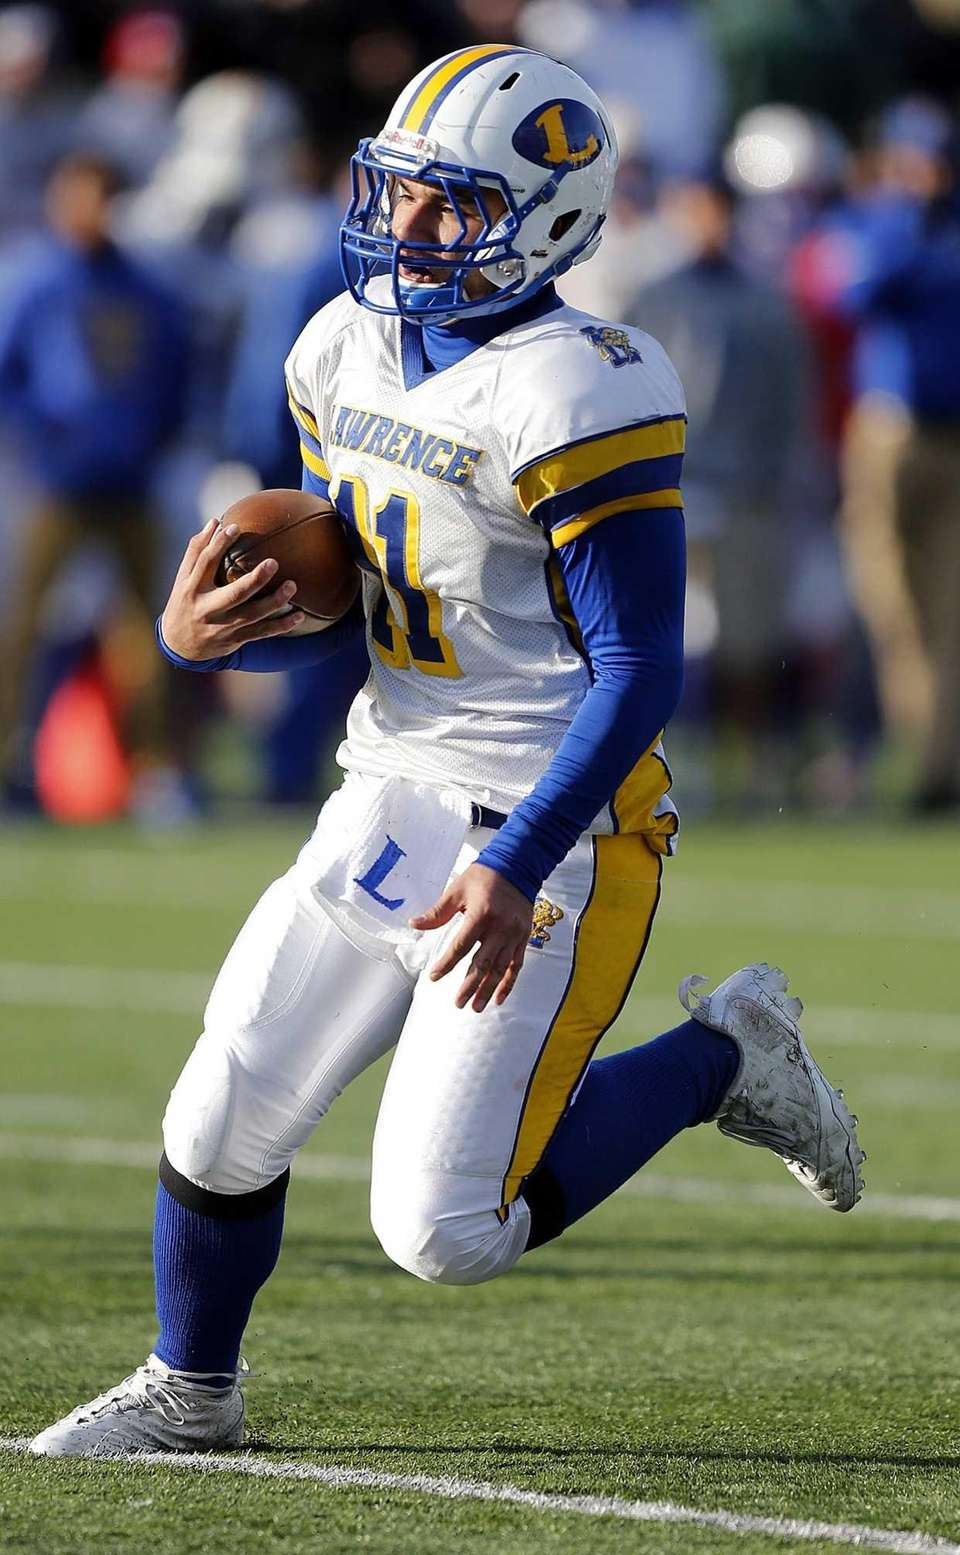 Lawrence quarterback Joe Capobianco keeps the ball in